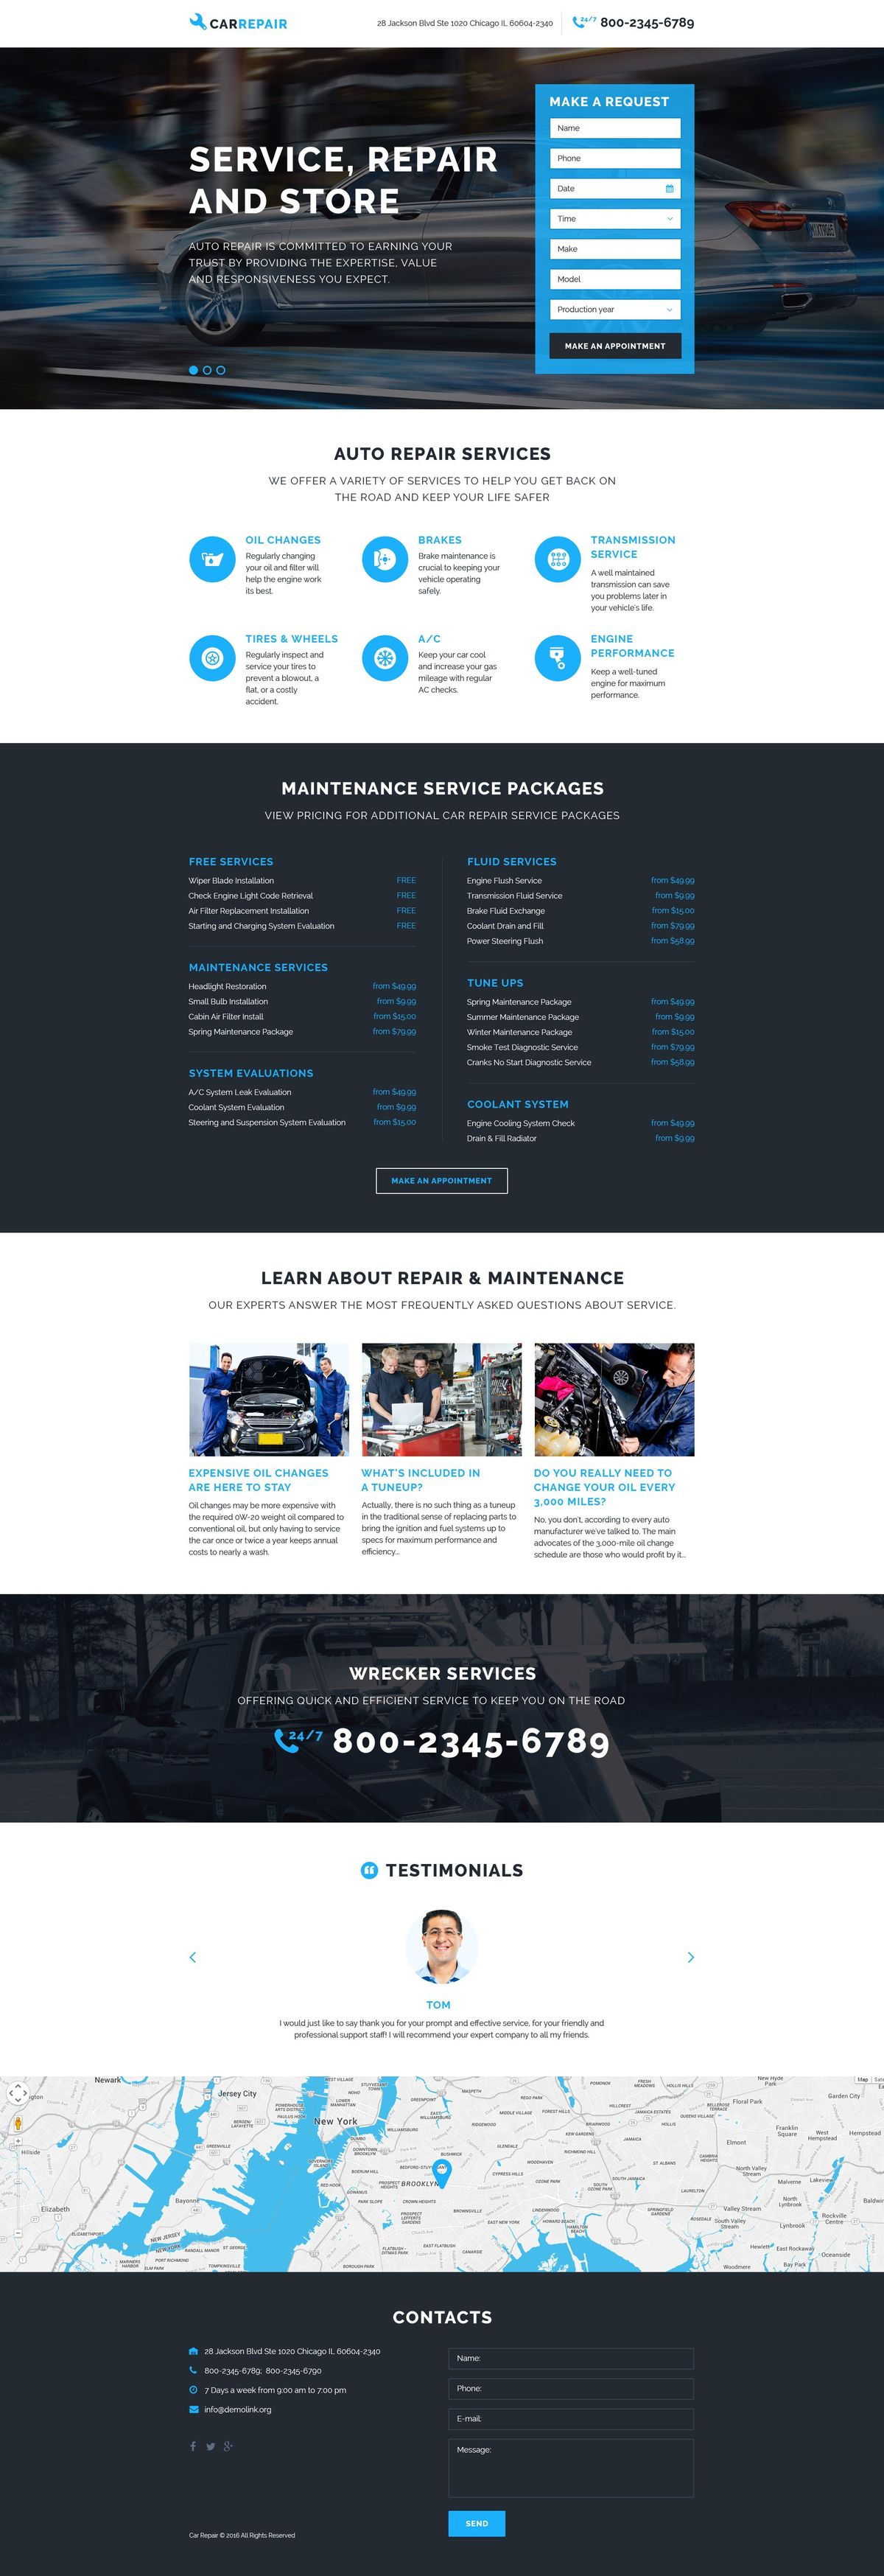 Best Selling Landing Page Templates   TemplateMonster